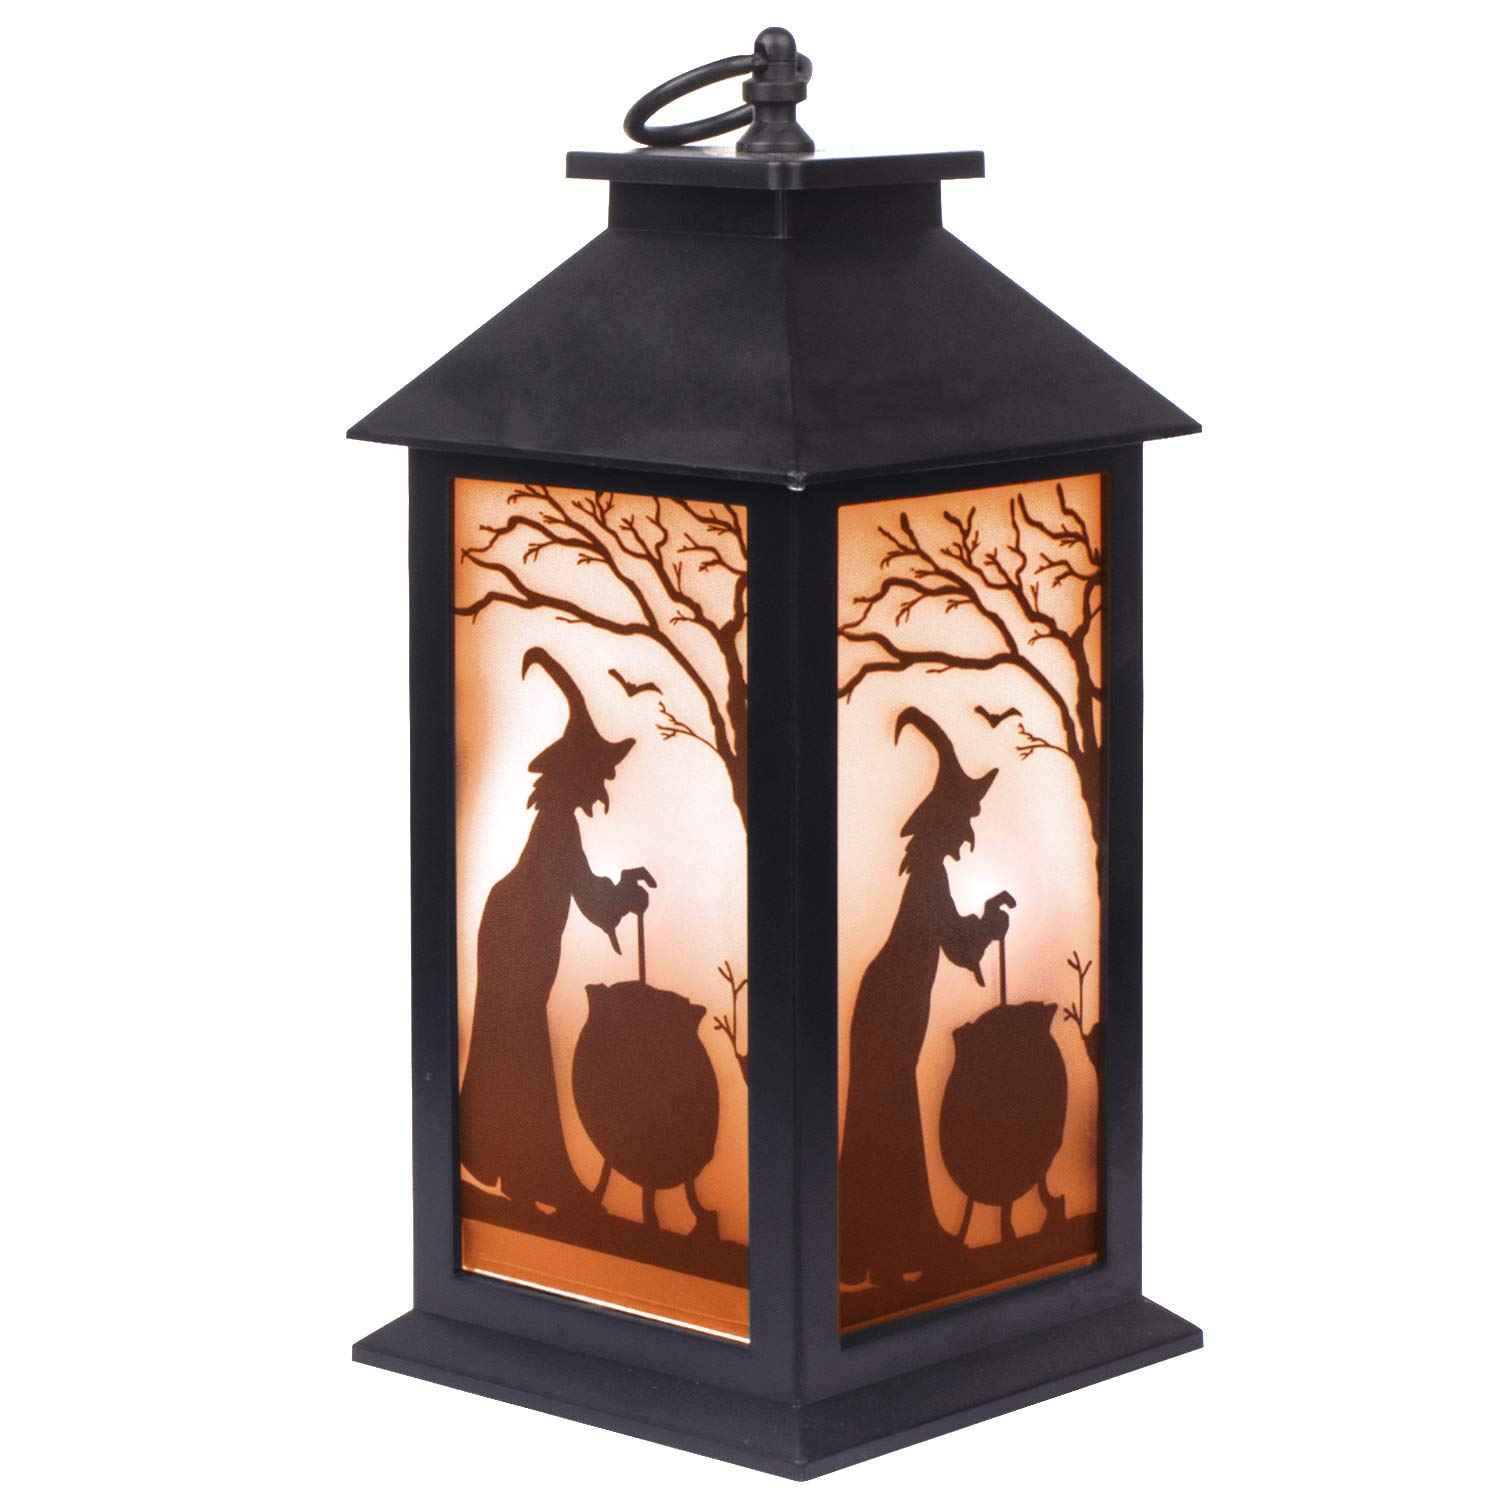 KI Store Halloween Decorations Flickering Flame Effect Lantern Lights Hanging Lanterns Battery Operated for Mantel Window Tabletop Porch Haunted House Garden Yard Lawn (Lantern Large Witch)